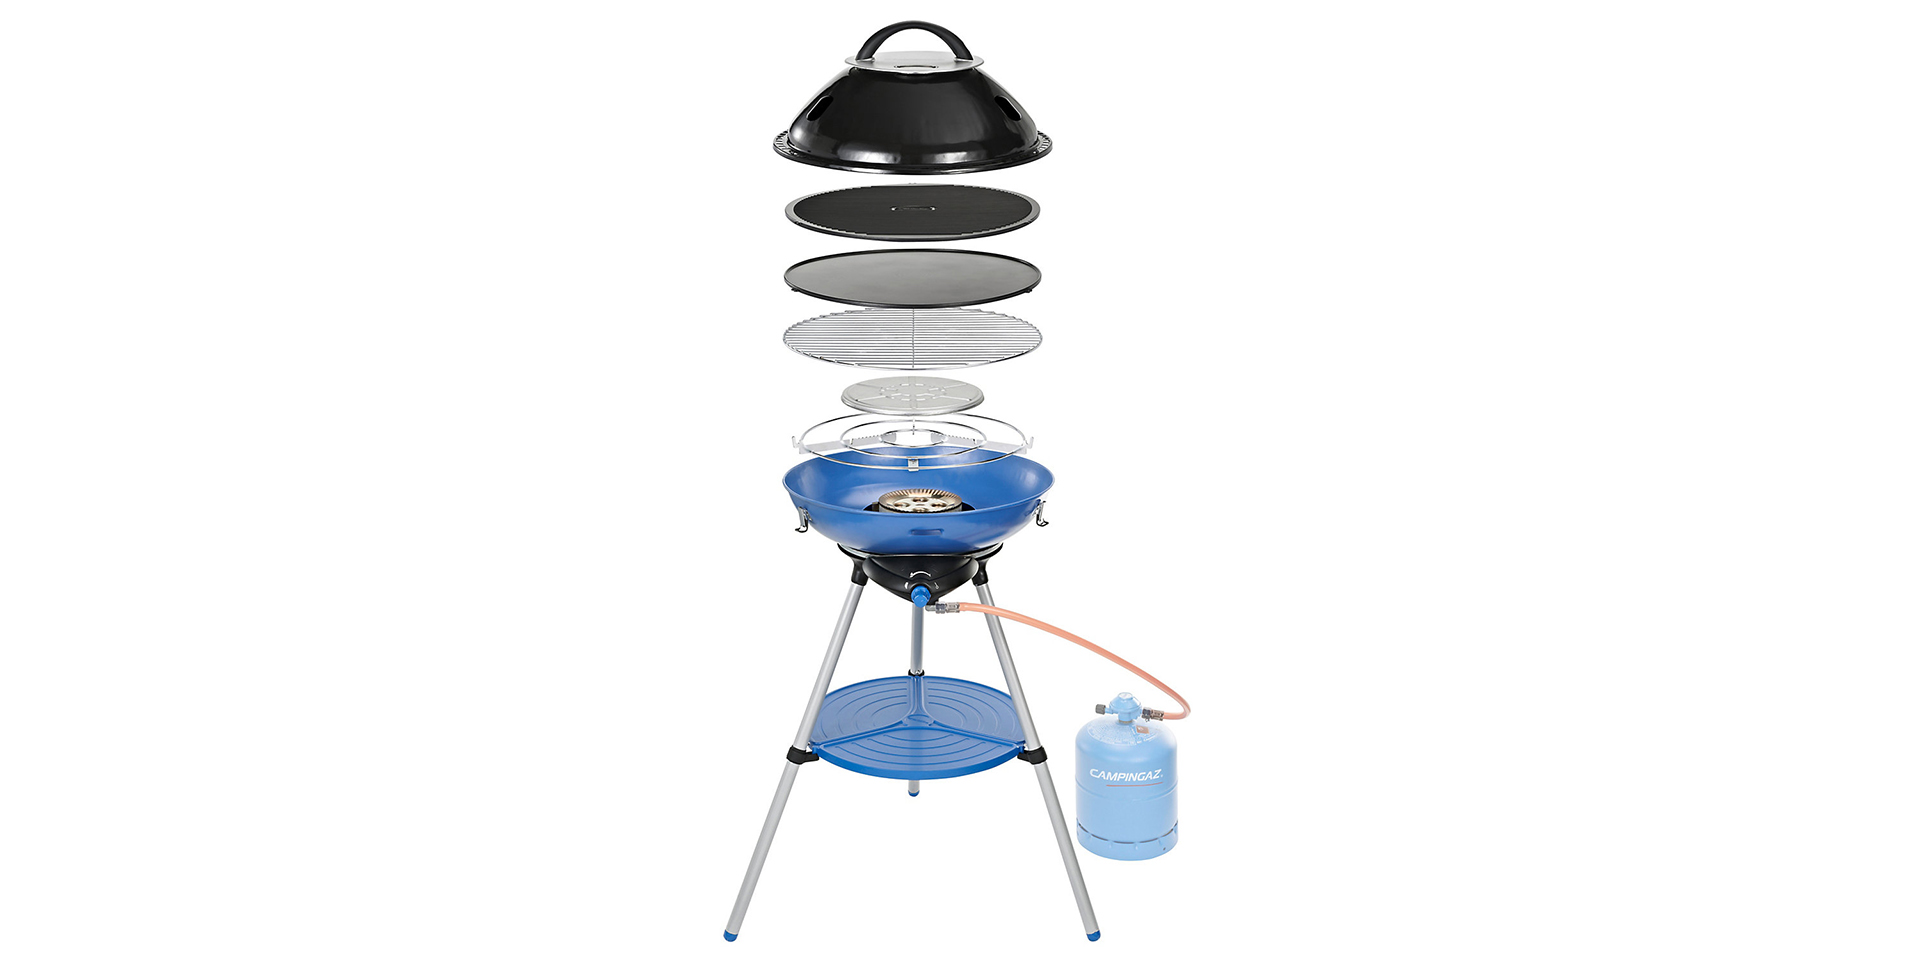 Campingaz_partygrill600eur2499902